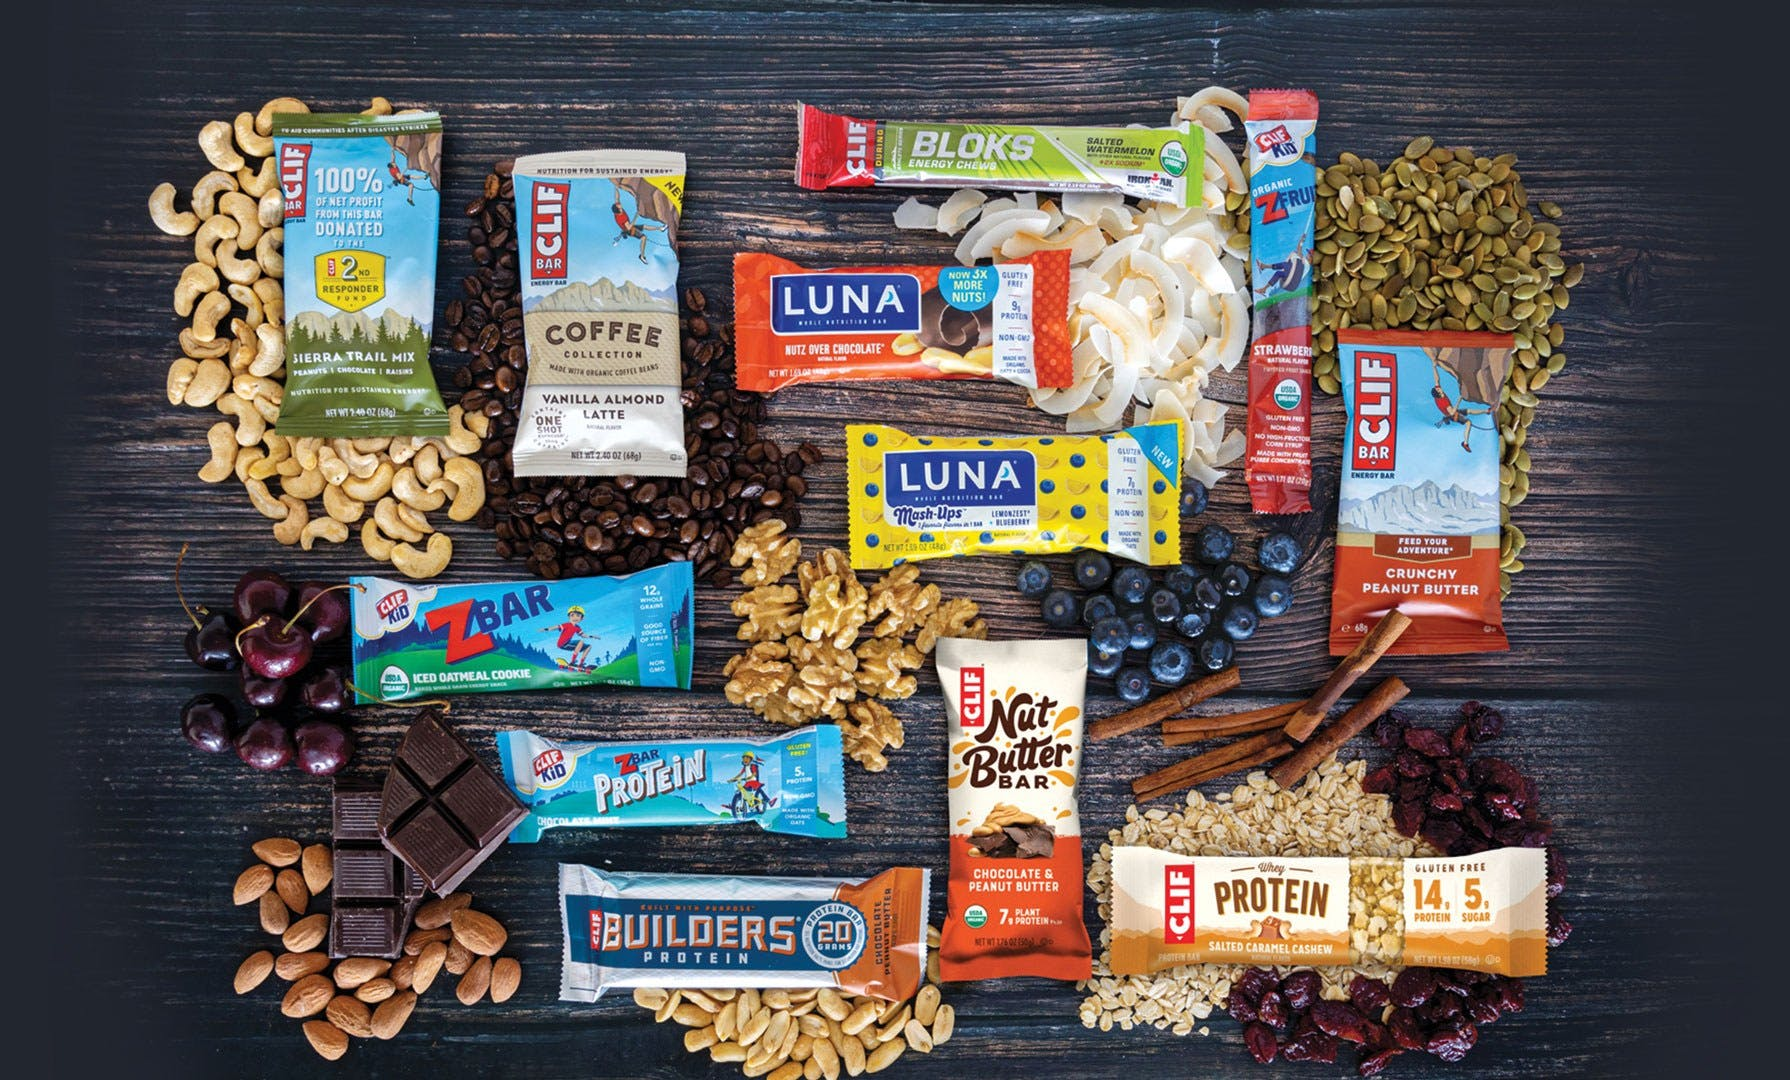 Clif product assortment with ingredients